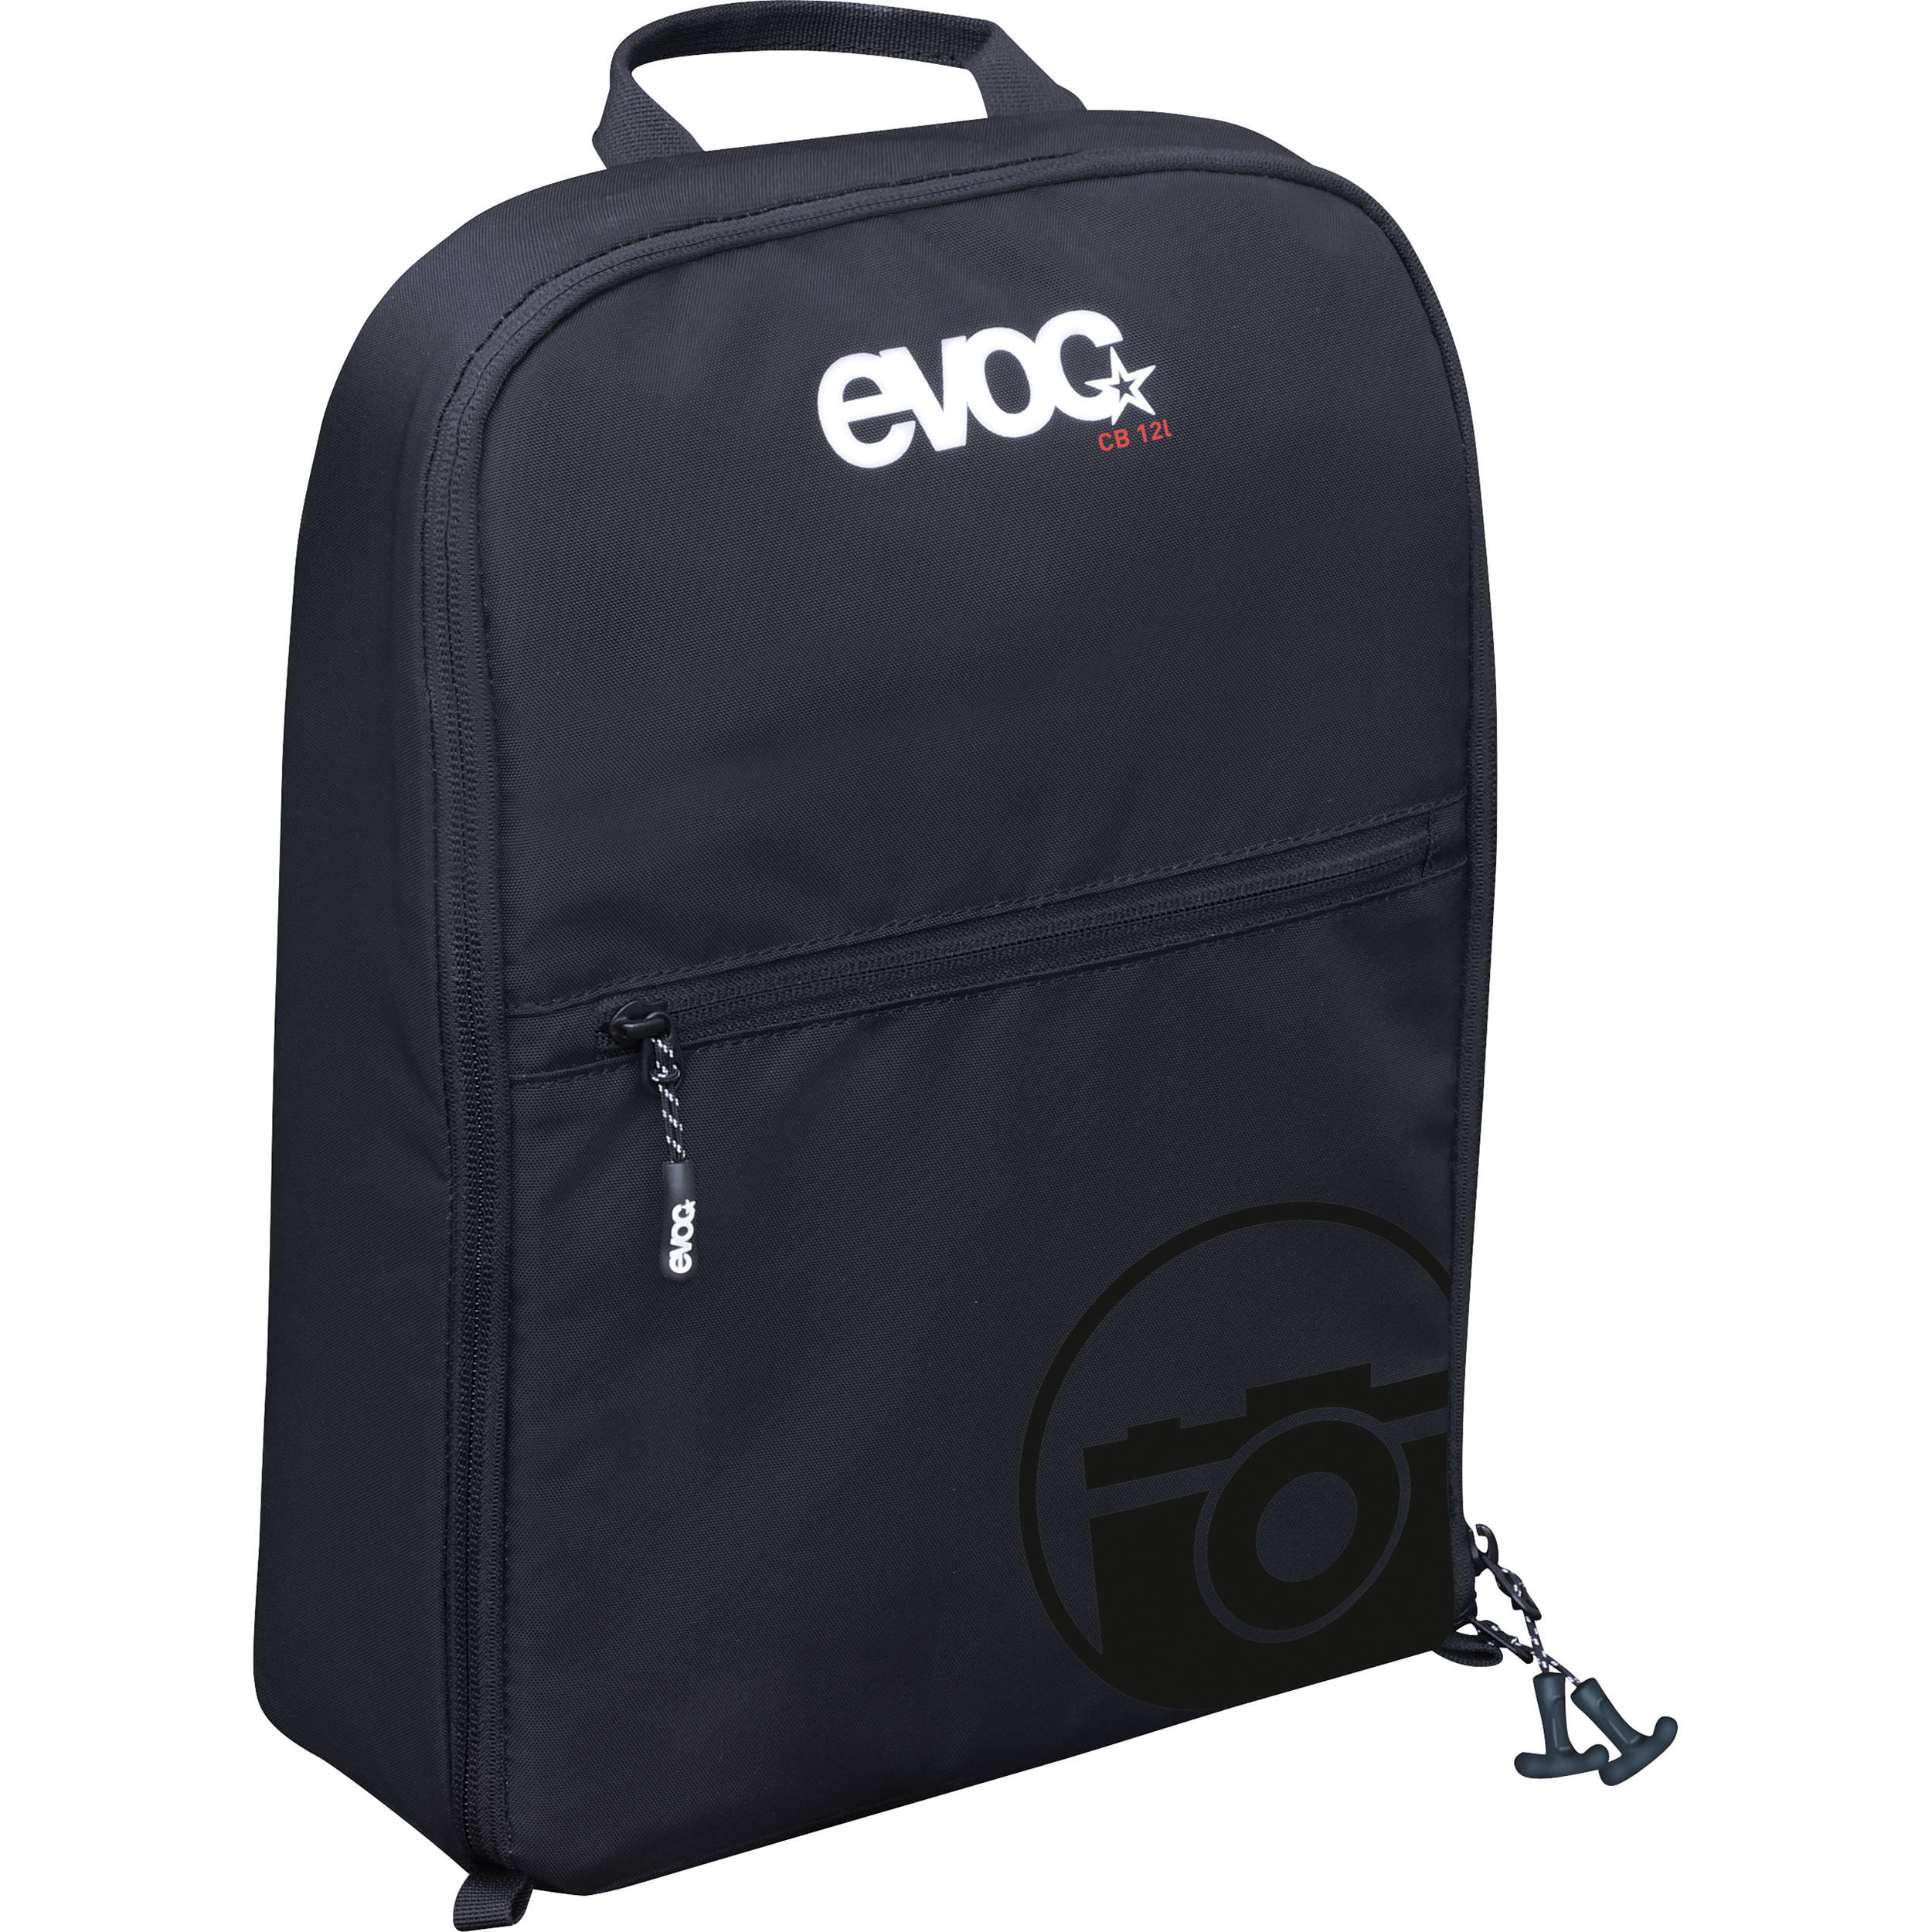 Evoc Camera Block 12L Backpack Insert (Black) EVCB-BK12 B&H